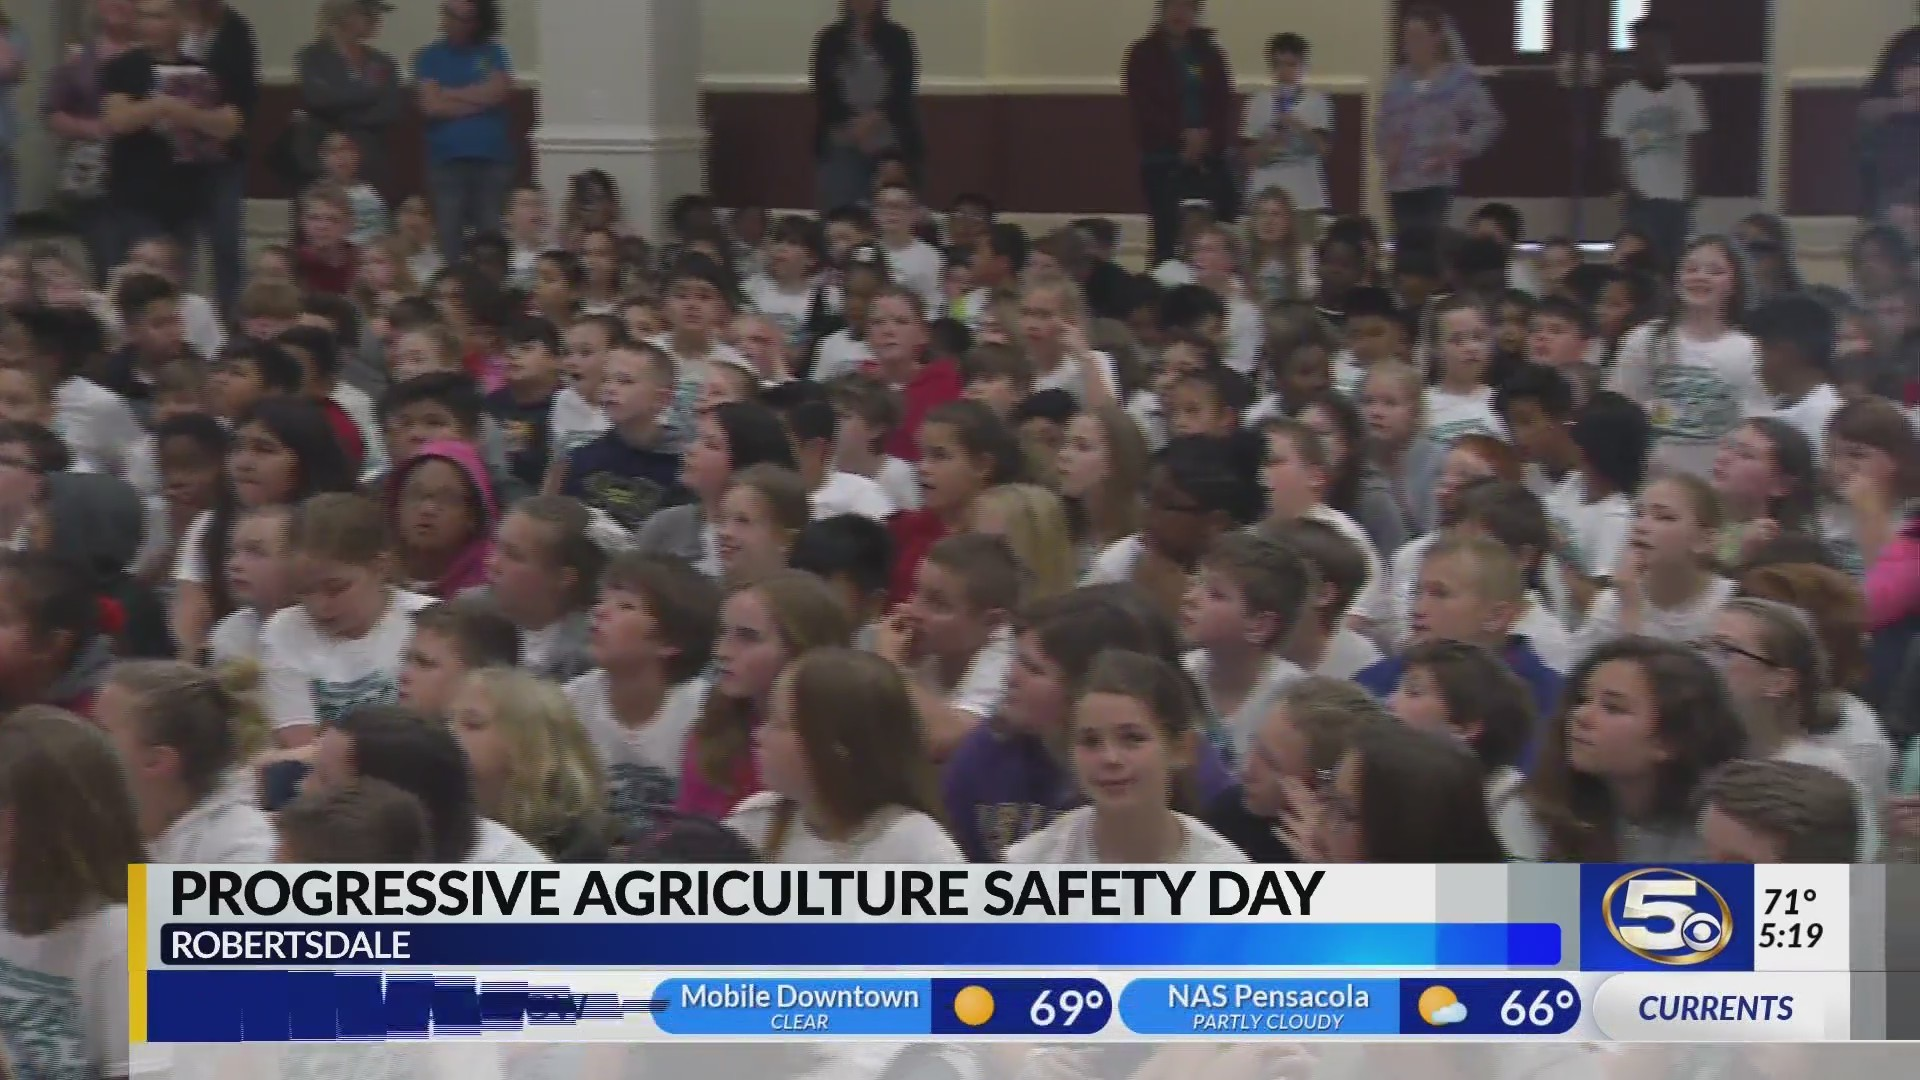 Progressive Agriculture Safety Day in Robertsdale 2019